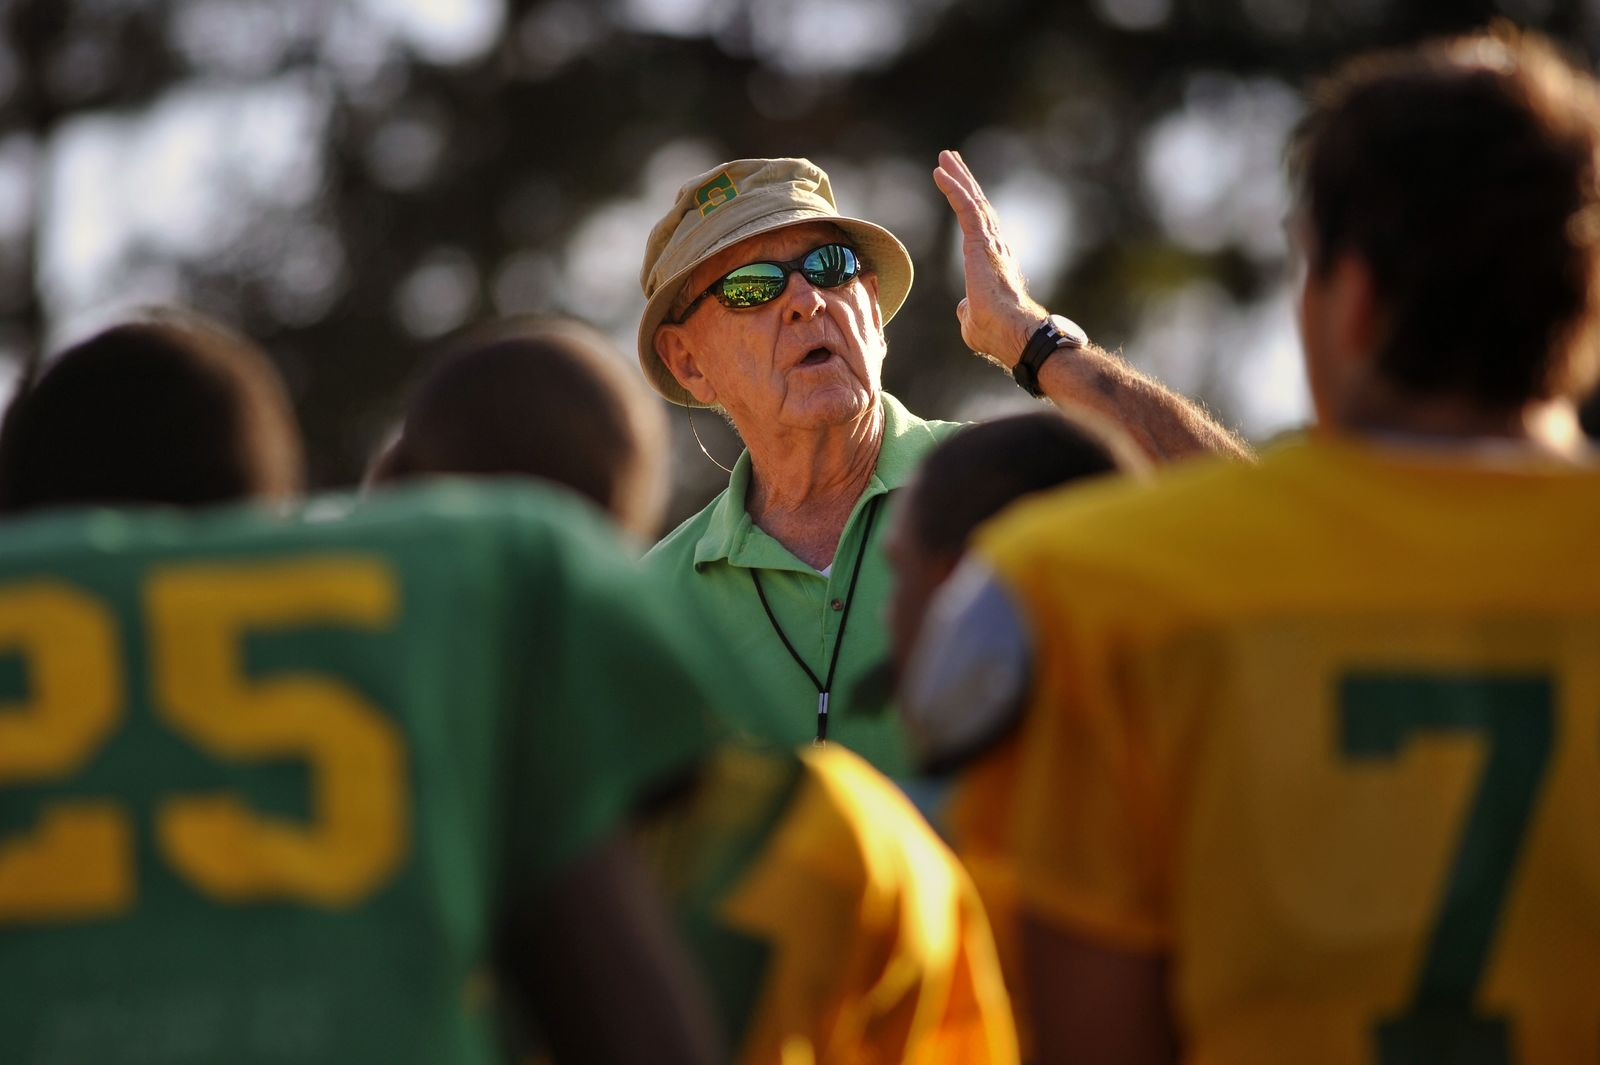 FILE - In this Oct. 24, 2012, file photo, Summerville High School coach John McKissick coaches his team during practice in Summerville, S.C. McKissick, whose 621 victories at South Carolina's Summerville High made him the nation's winningest football coach at any level, has died at age 93. Dorchester County Coroner Paul Brouthers said McKissick had been in hospice care and died Thursday, Nov. 28, 2019, surrounded by family. (AP Photo/Stephen Morton, File)